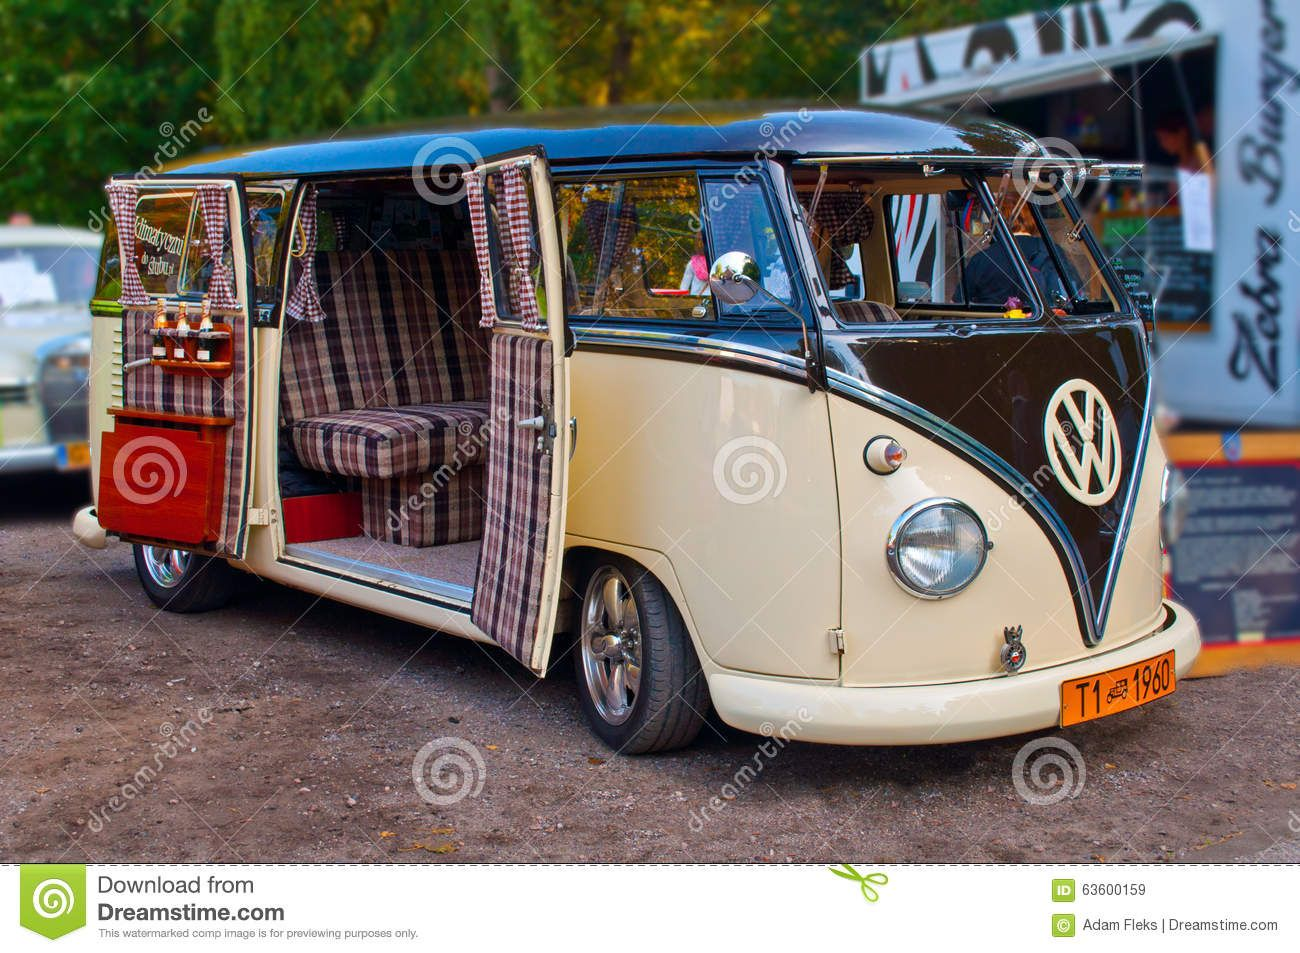 old and beautifully renovated vw t1 kombi van from 1960 with side